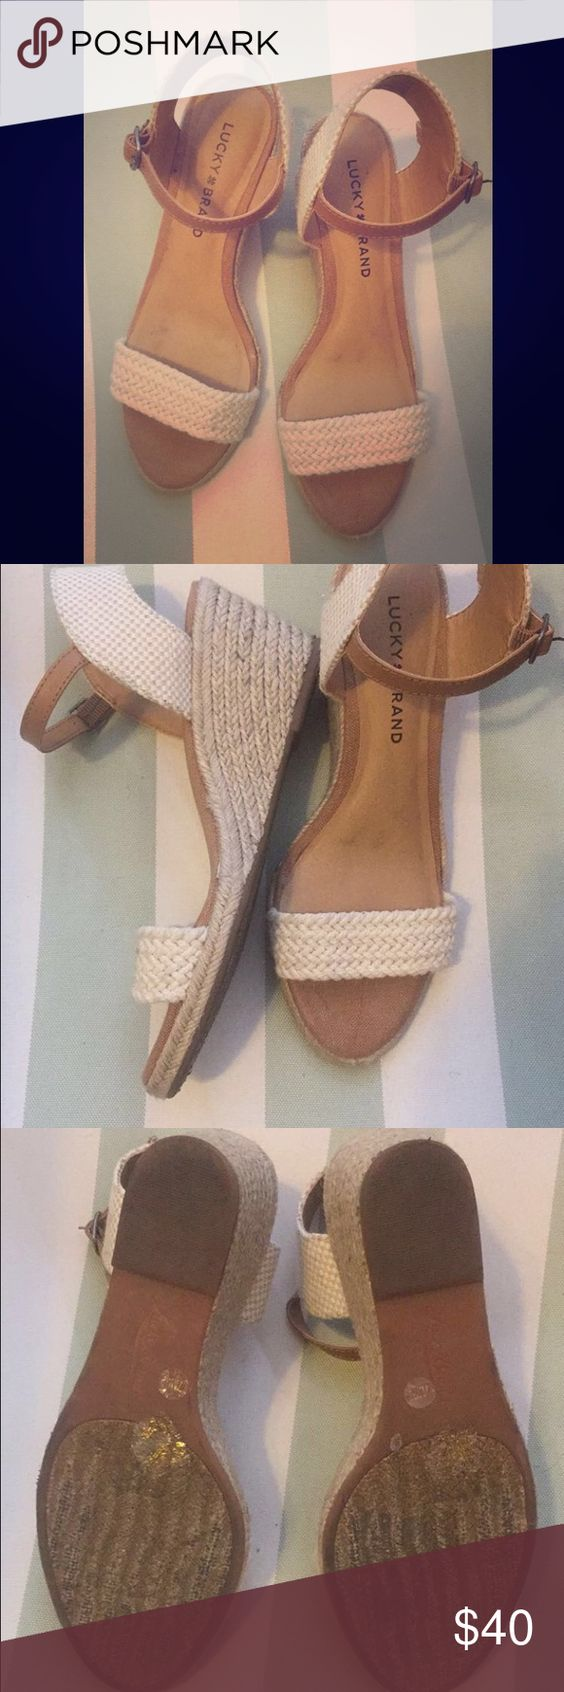 Lucky Brand Wedges Used but great condition!! Look great with everything an they are not too tall! Lucky Brand Shoes Wedges